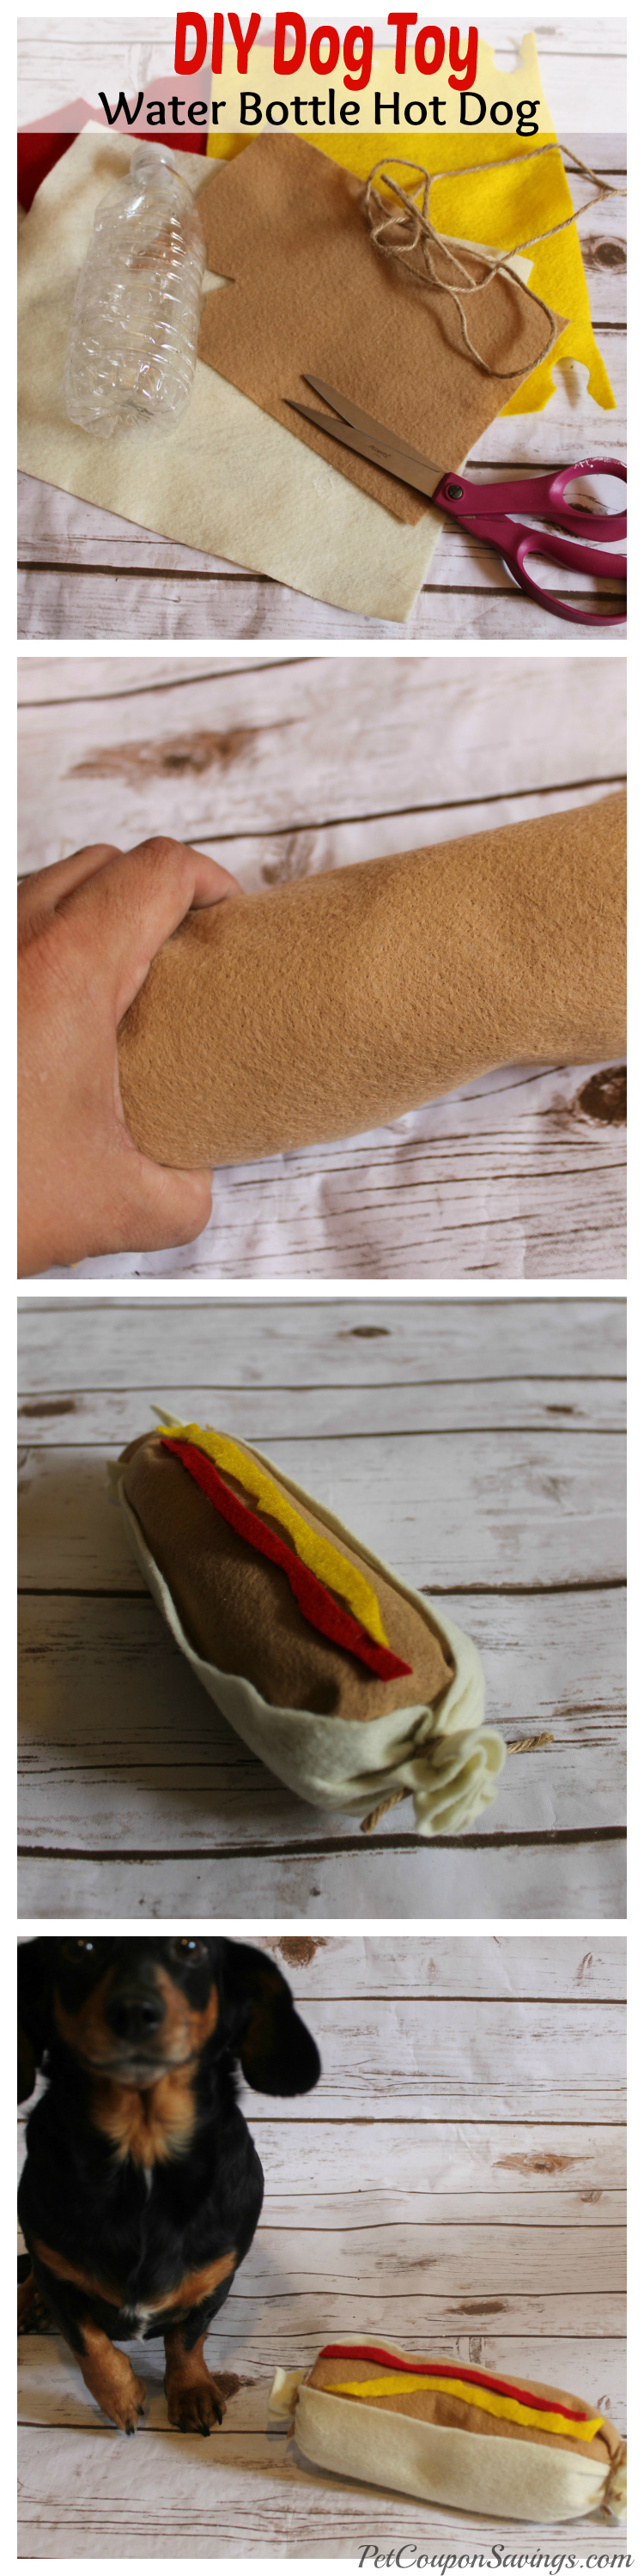 DIY Hot Dog Water Bottle Dog Toy